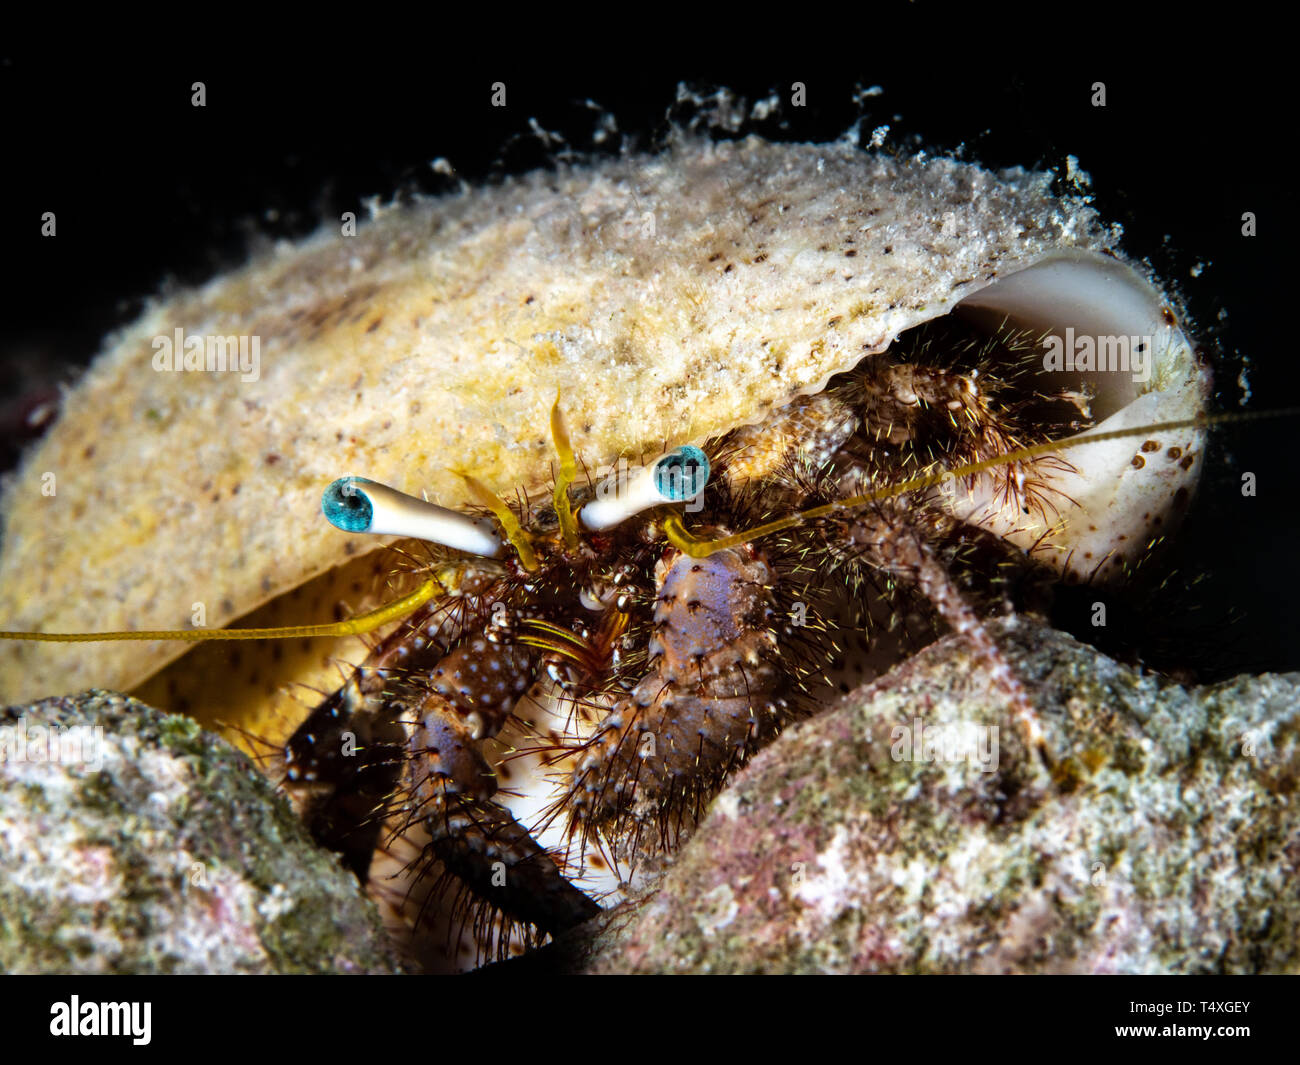 Hairy Hermit Crab, Red Sea, Egypt - Stock Image